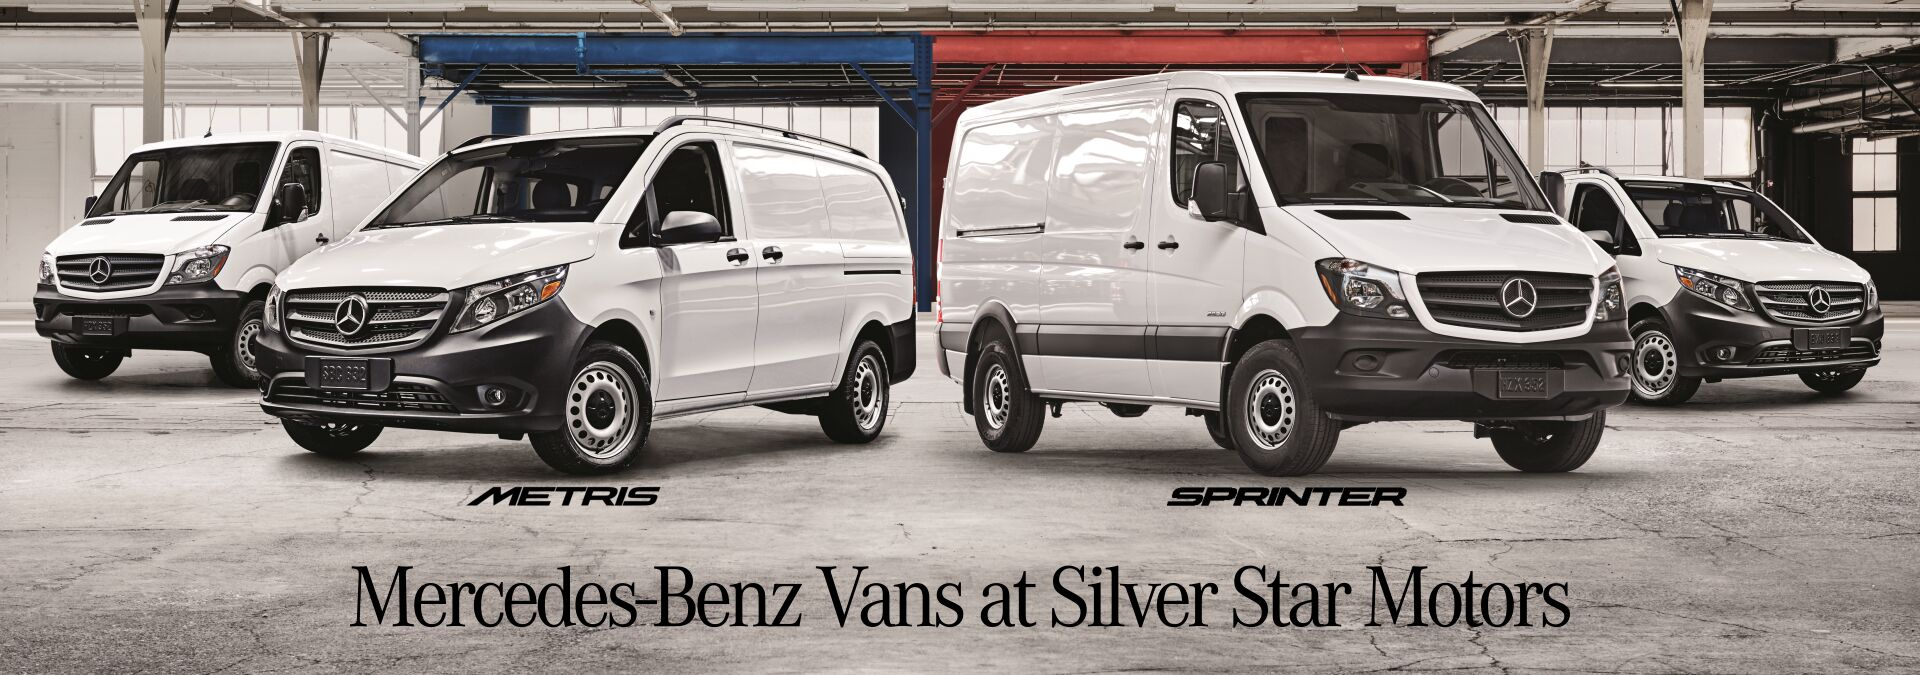 Mercedes-Benz Vans in Long Island City, NY